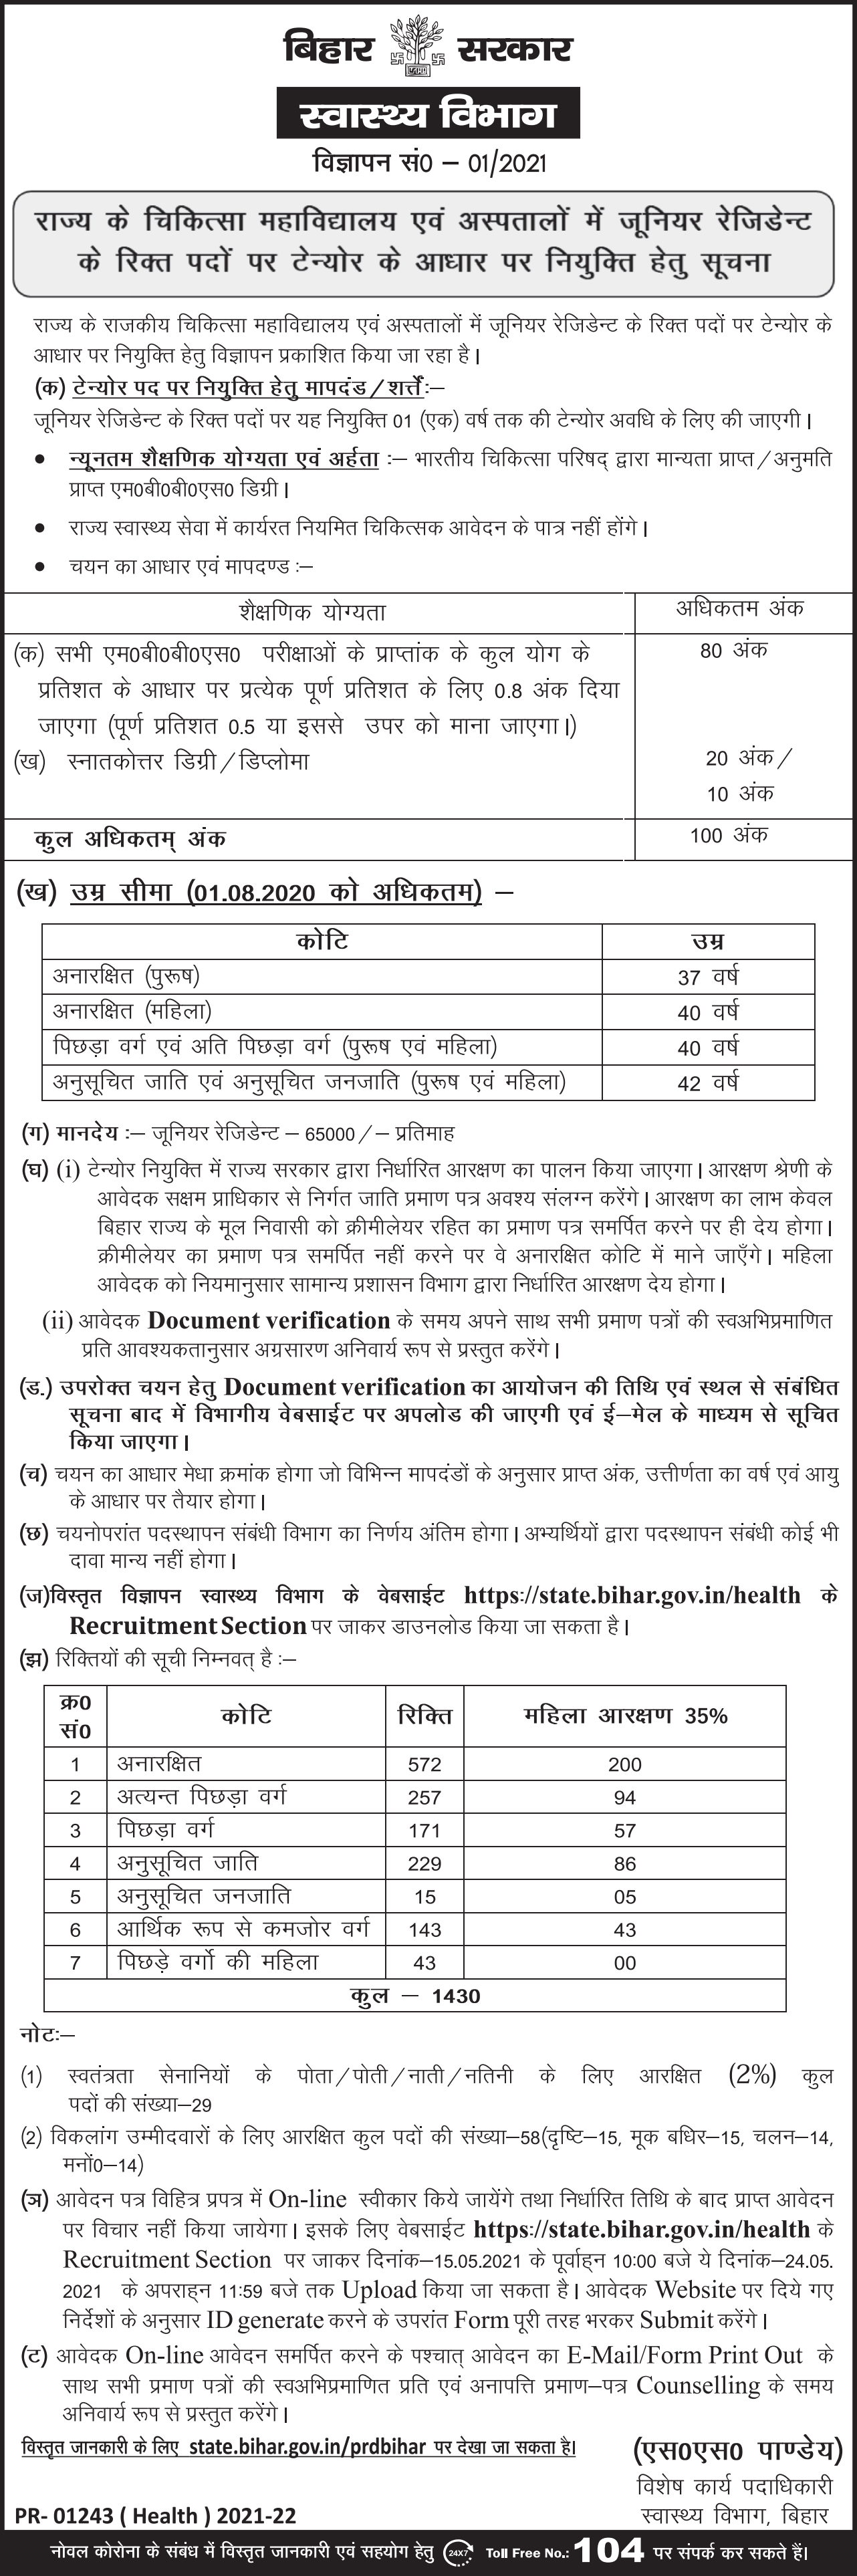 Online Application for the Post of Junior Resident on tenure basis in Govt Medical College and Hospitals between 15-05-2021 to 24-05-2021